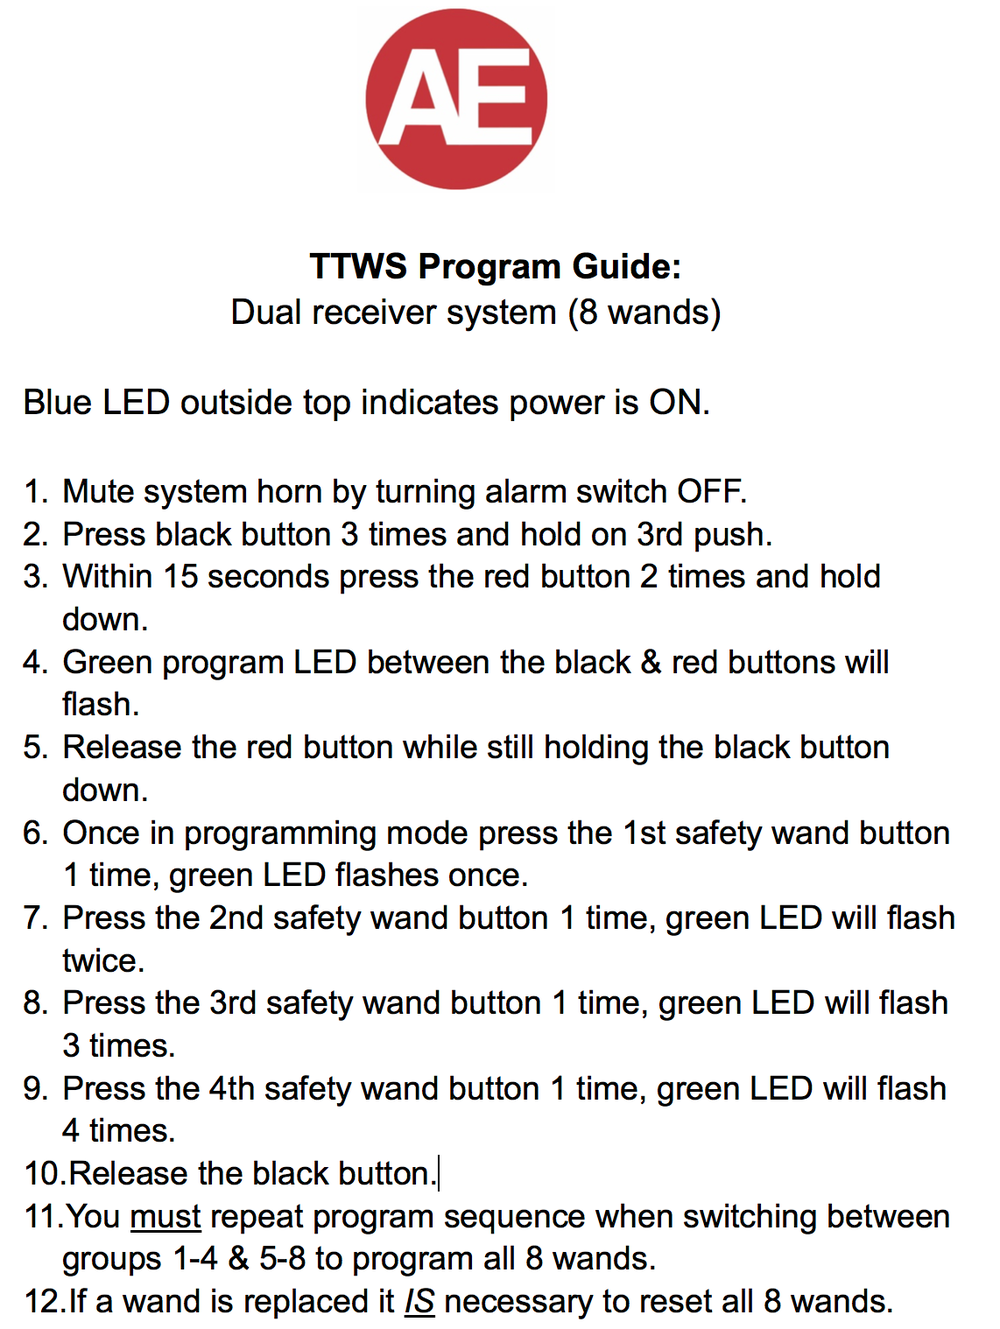 TTWS_Program_Guide_Dualb.png